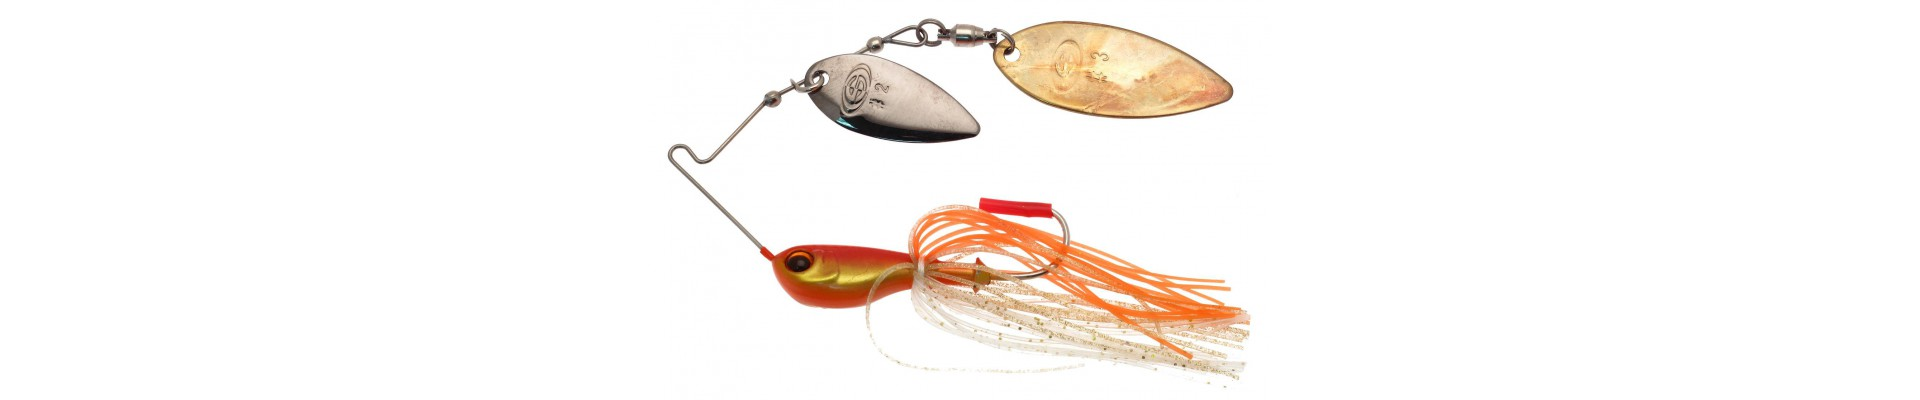 Spinnerbaits / Chatterbaits / Buzzbaits